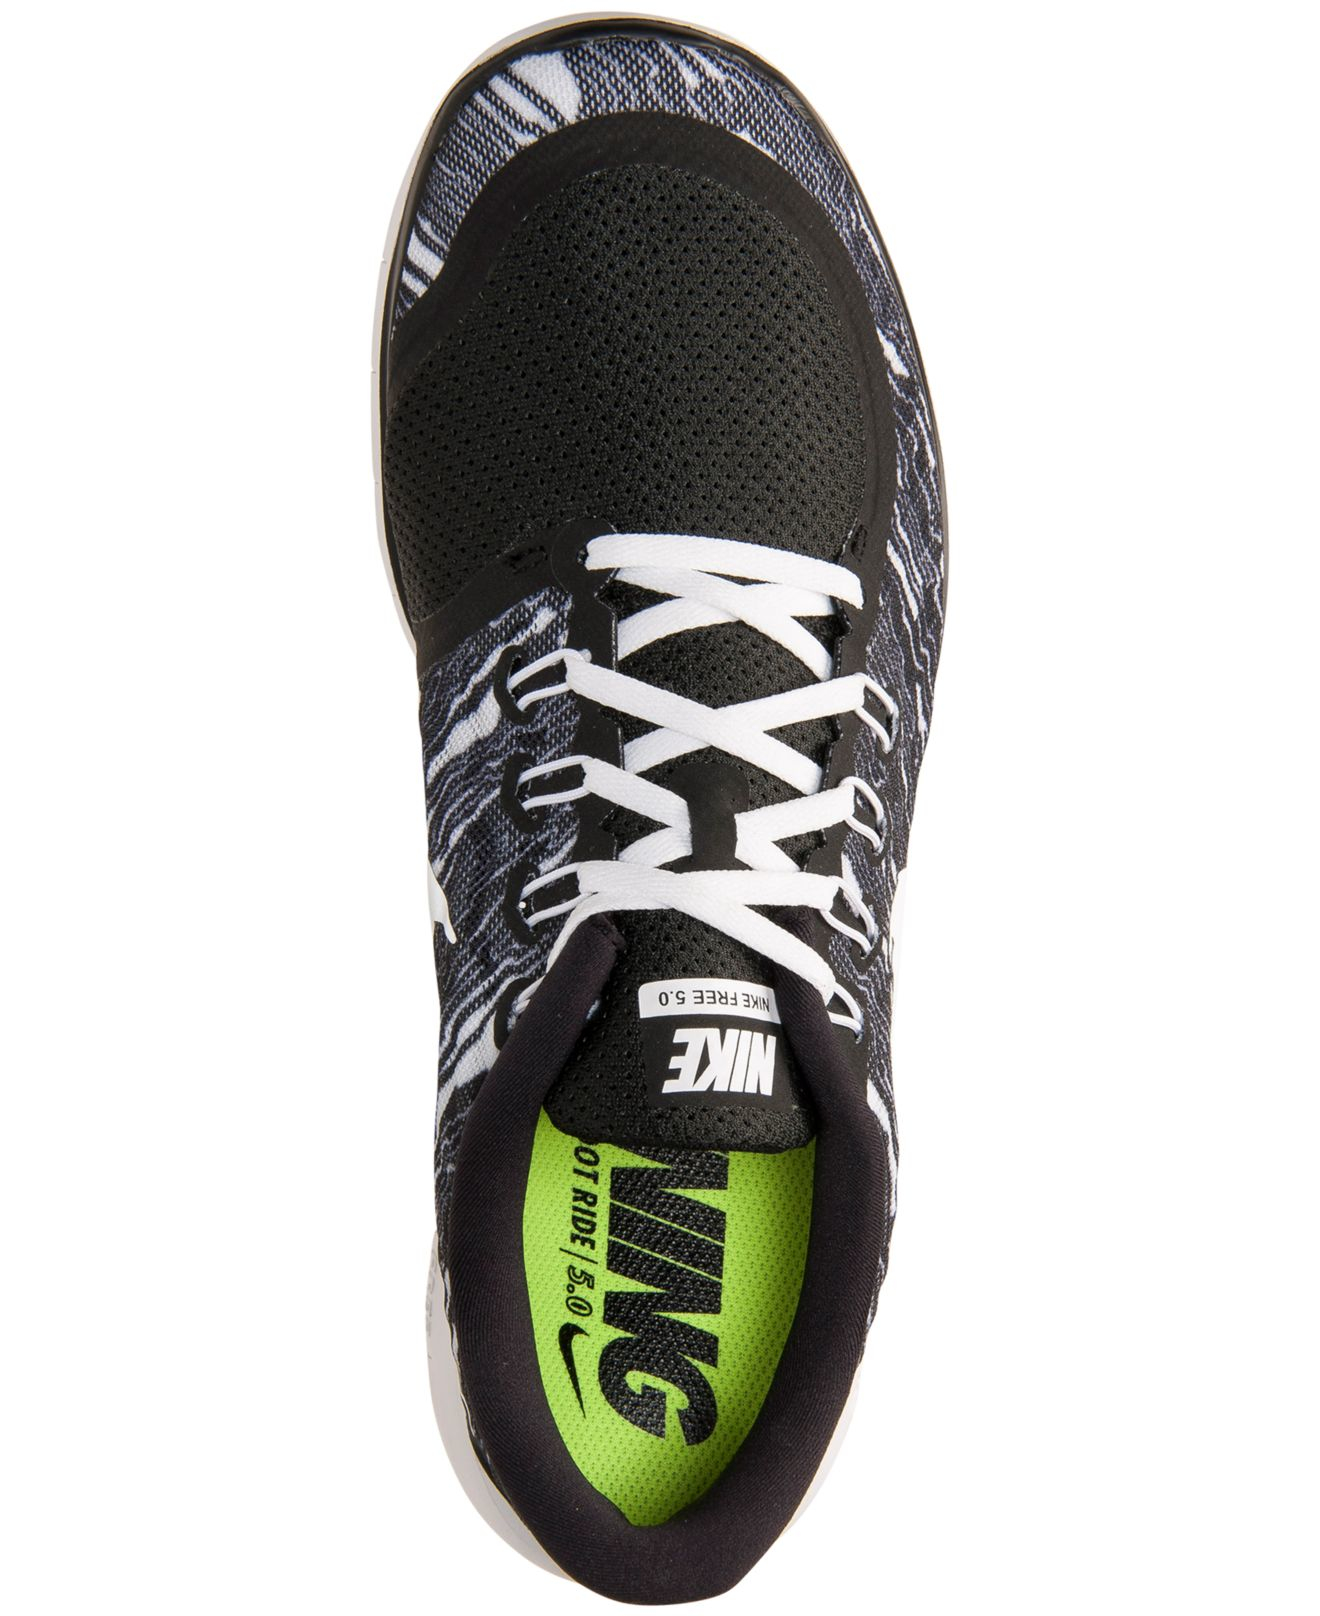 Is Saucony Better Than Nike For Running Shoes